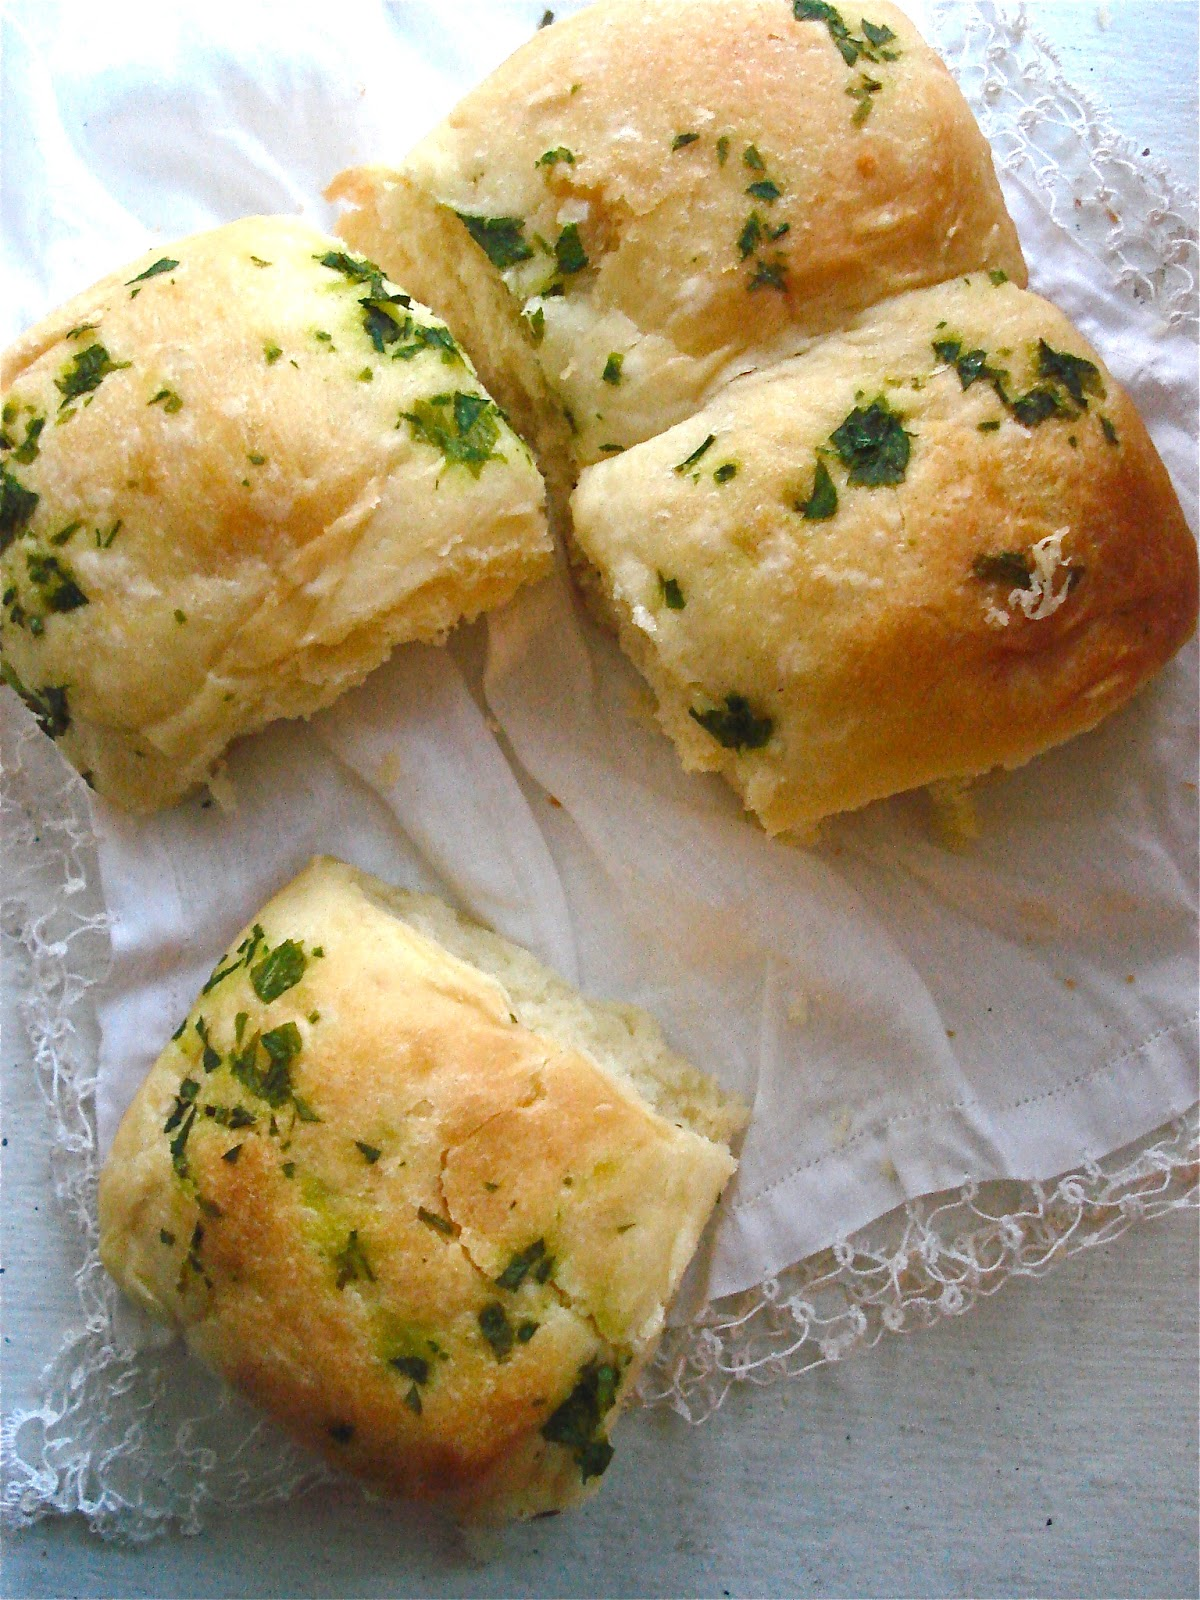 ... By Any Other Name: Channel Your Inner Fancy: Eat Parker House Rolls